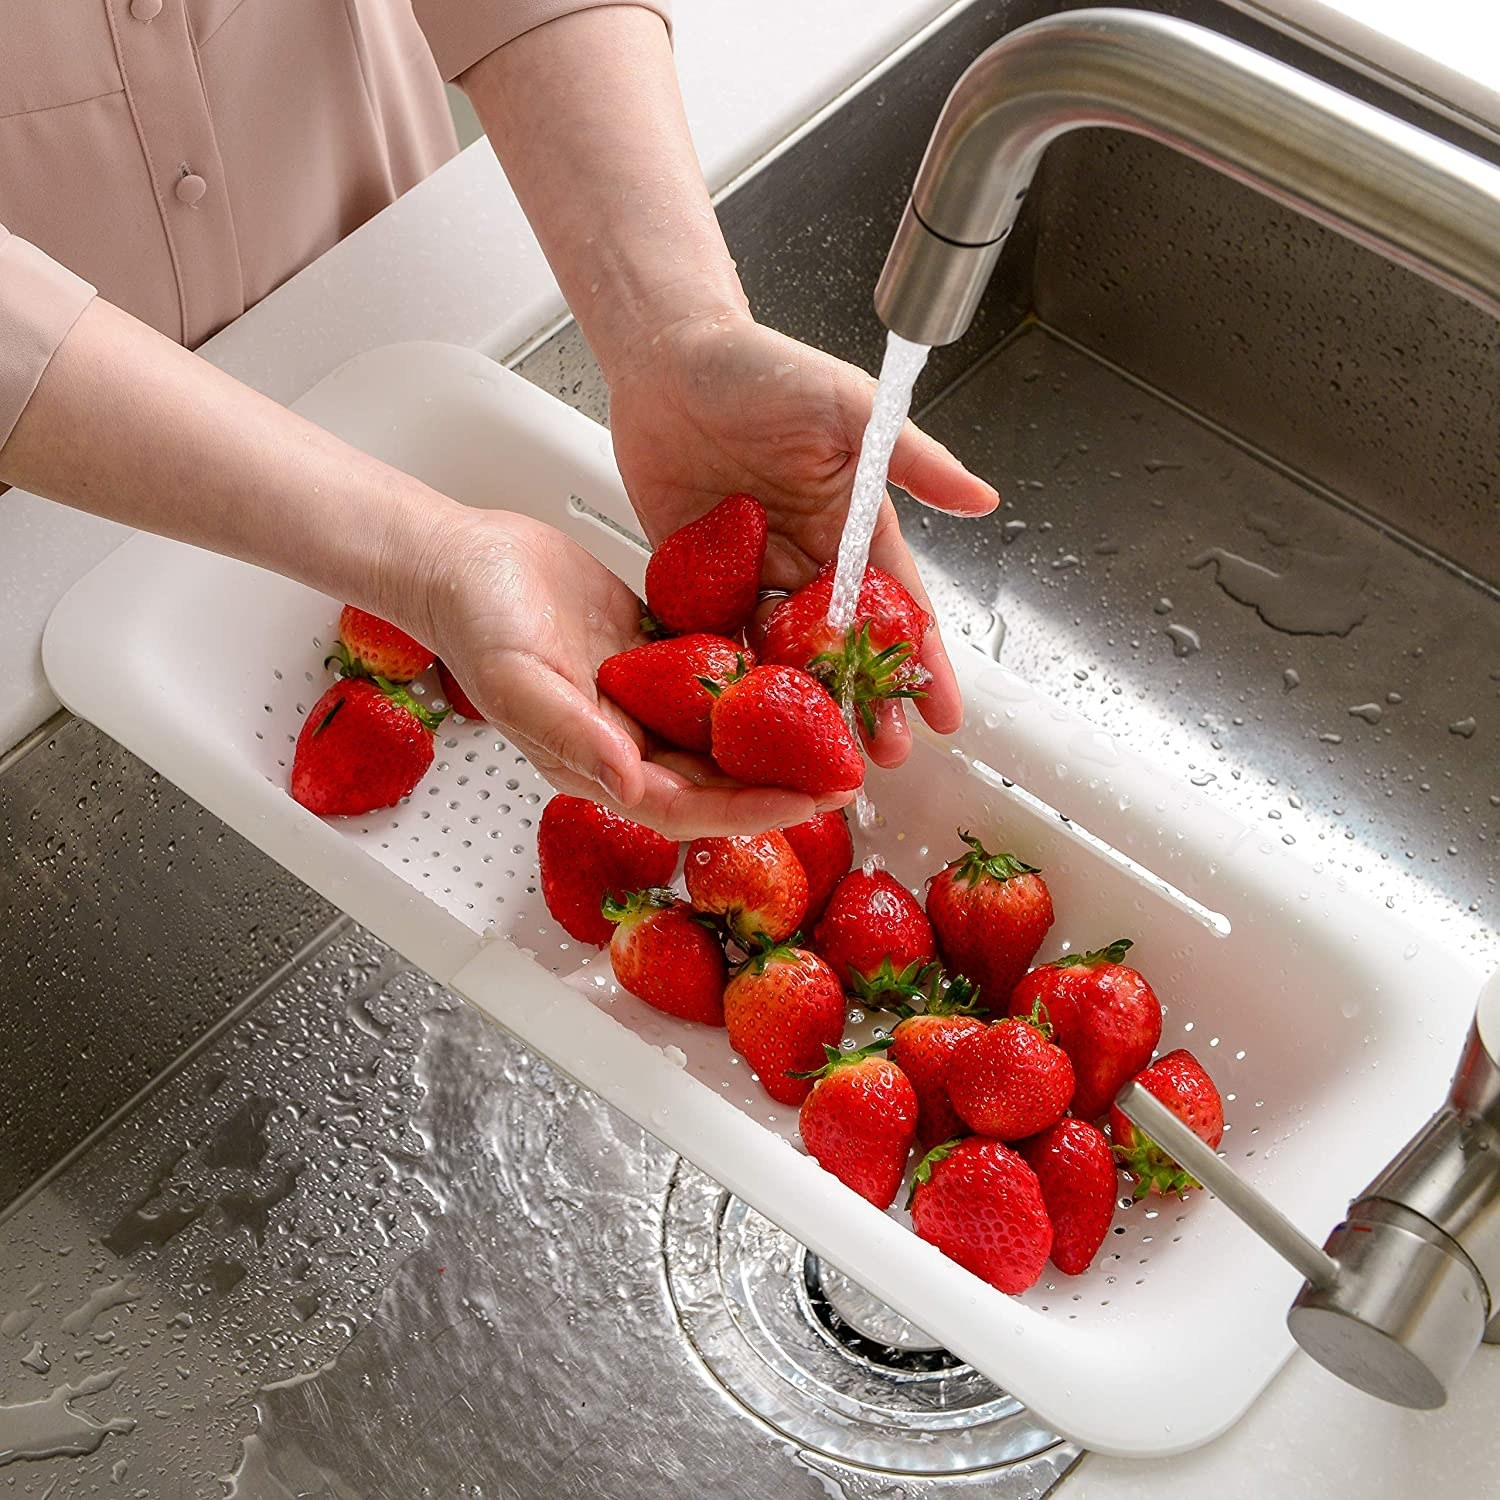 A person washing strawberries in the colander